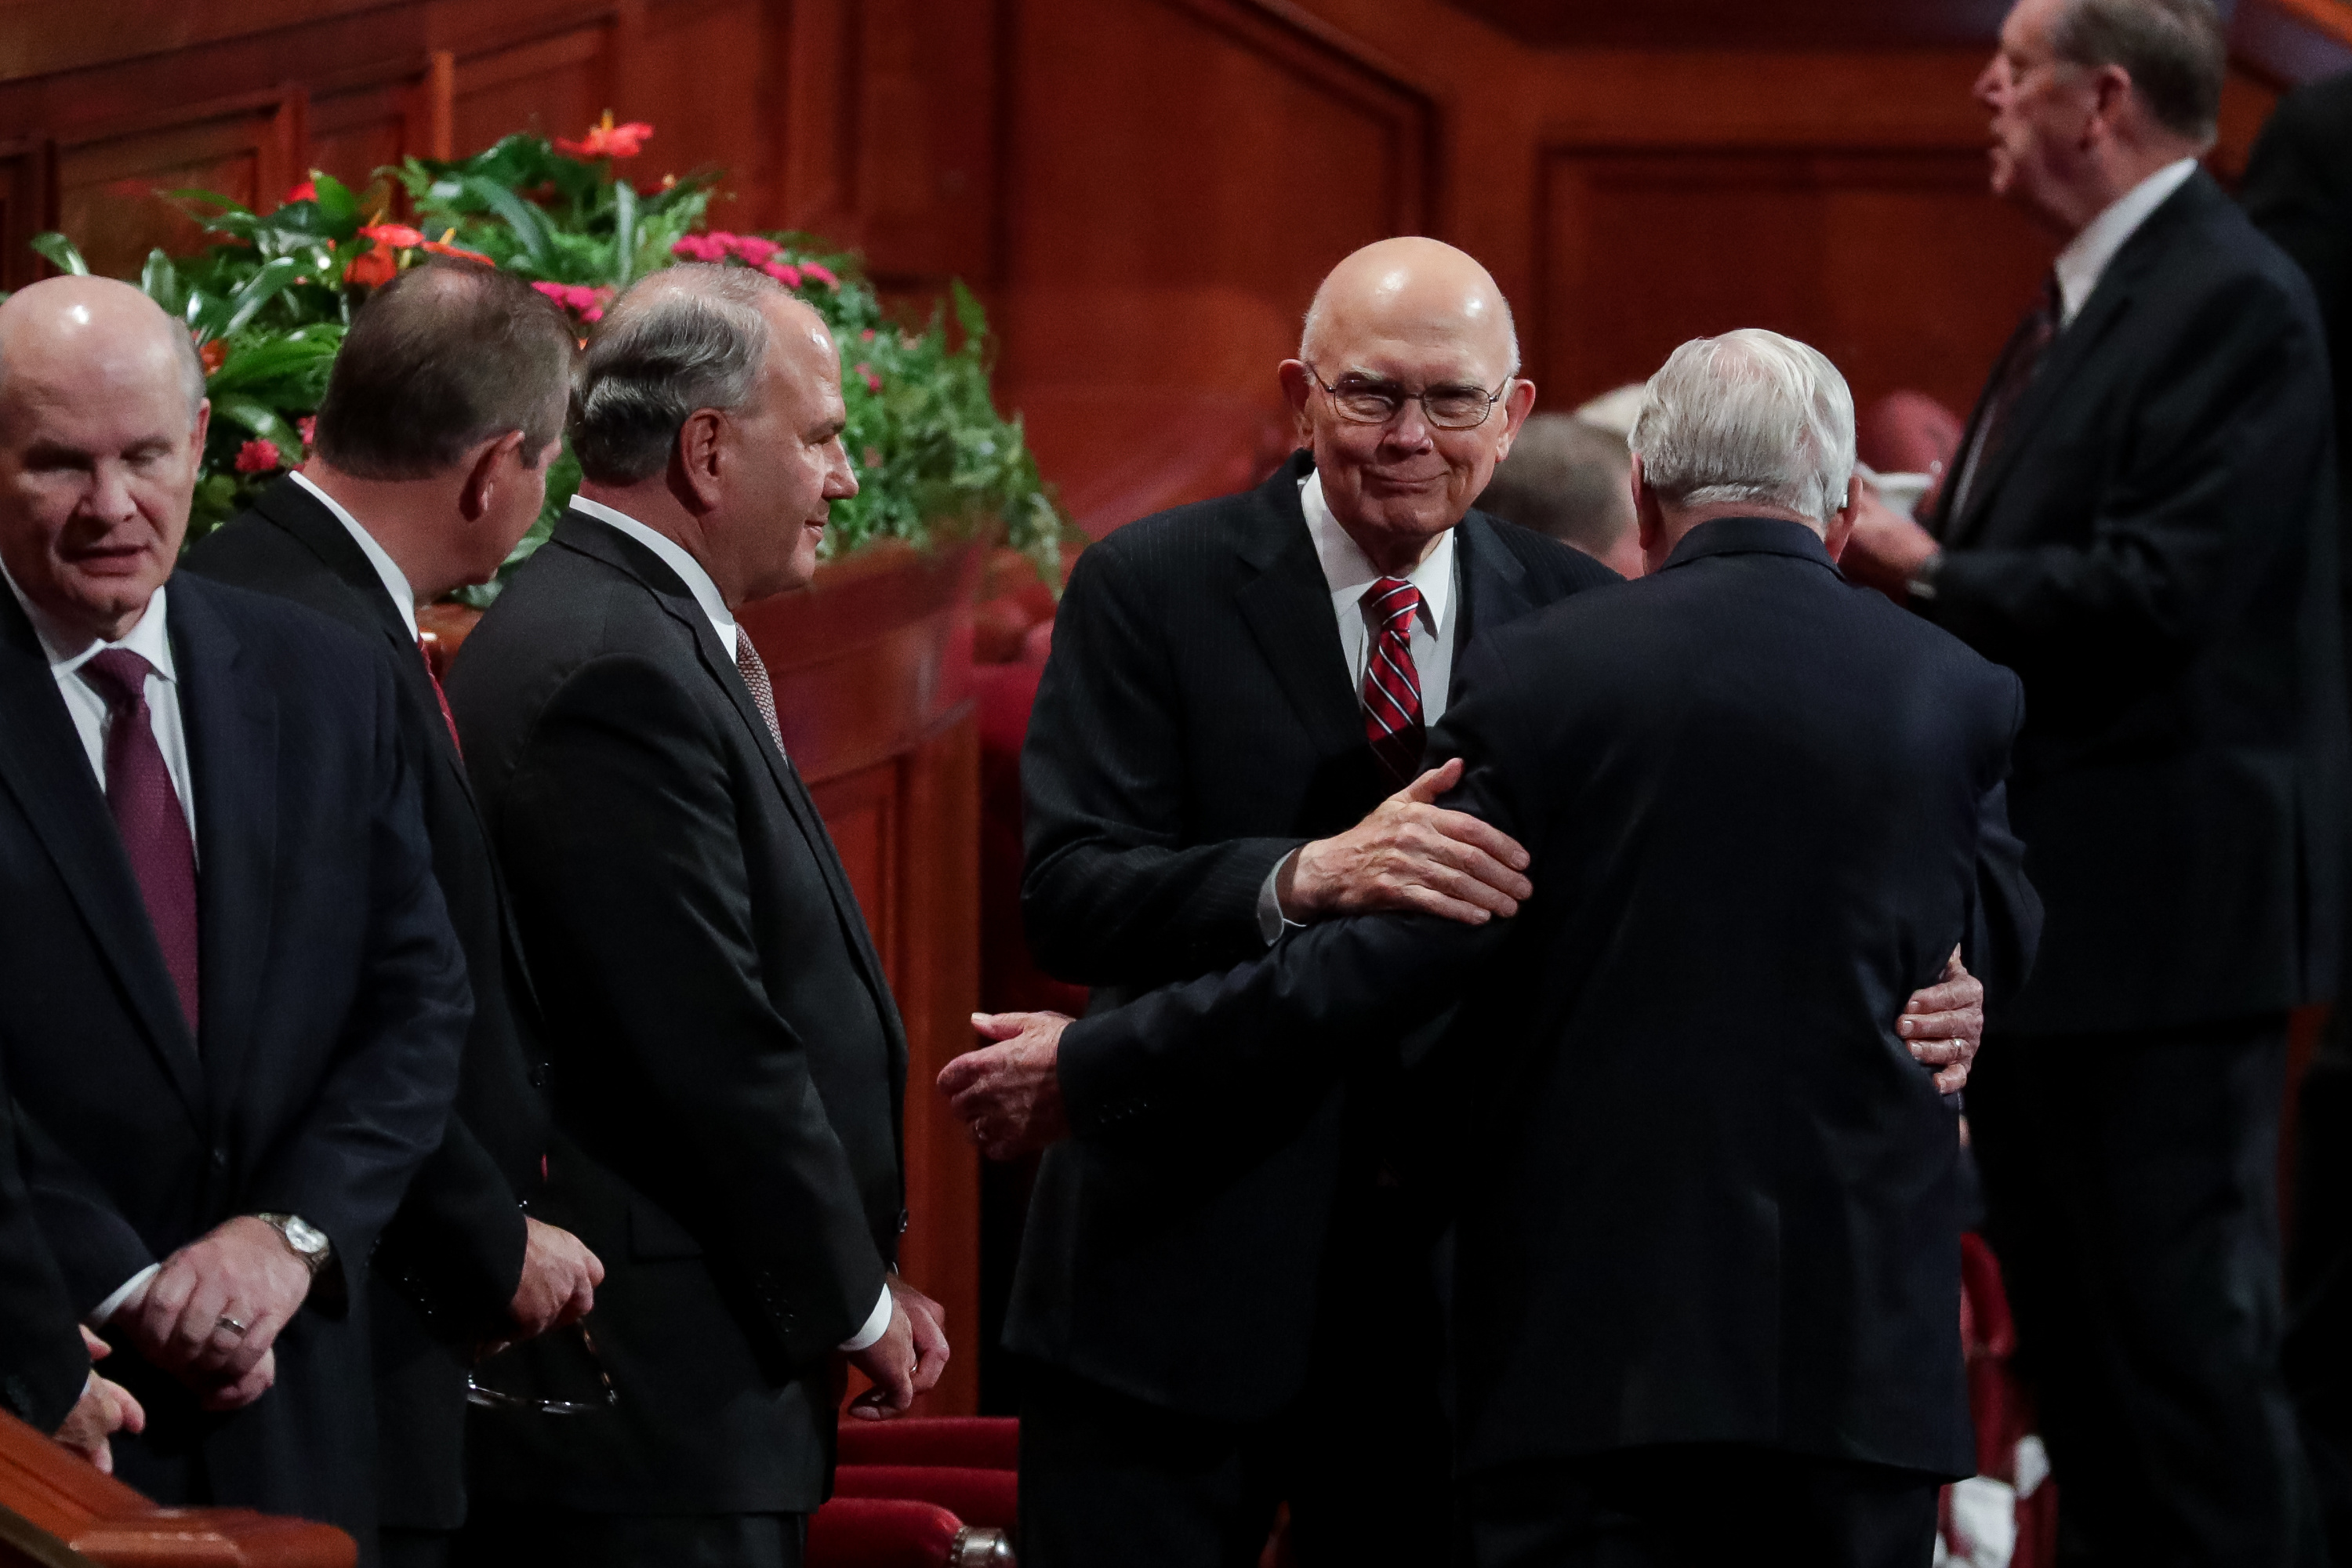 President Dallin H. Oaks, first counselor in the First Presidency, center, greets President M. Russell Ballard, acting president of the Quorum of the Twelve Apostles, right, before the start of the Saturday morning session of the 188th Semiannual General Conference of The Church of Jesus Christ of Latter-day Saints in the Conference Center in Salt Lake City on Saturday, Oct. 6, 2018.